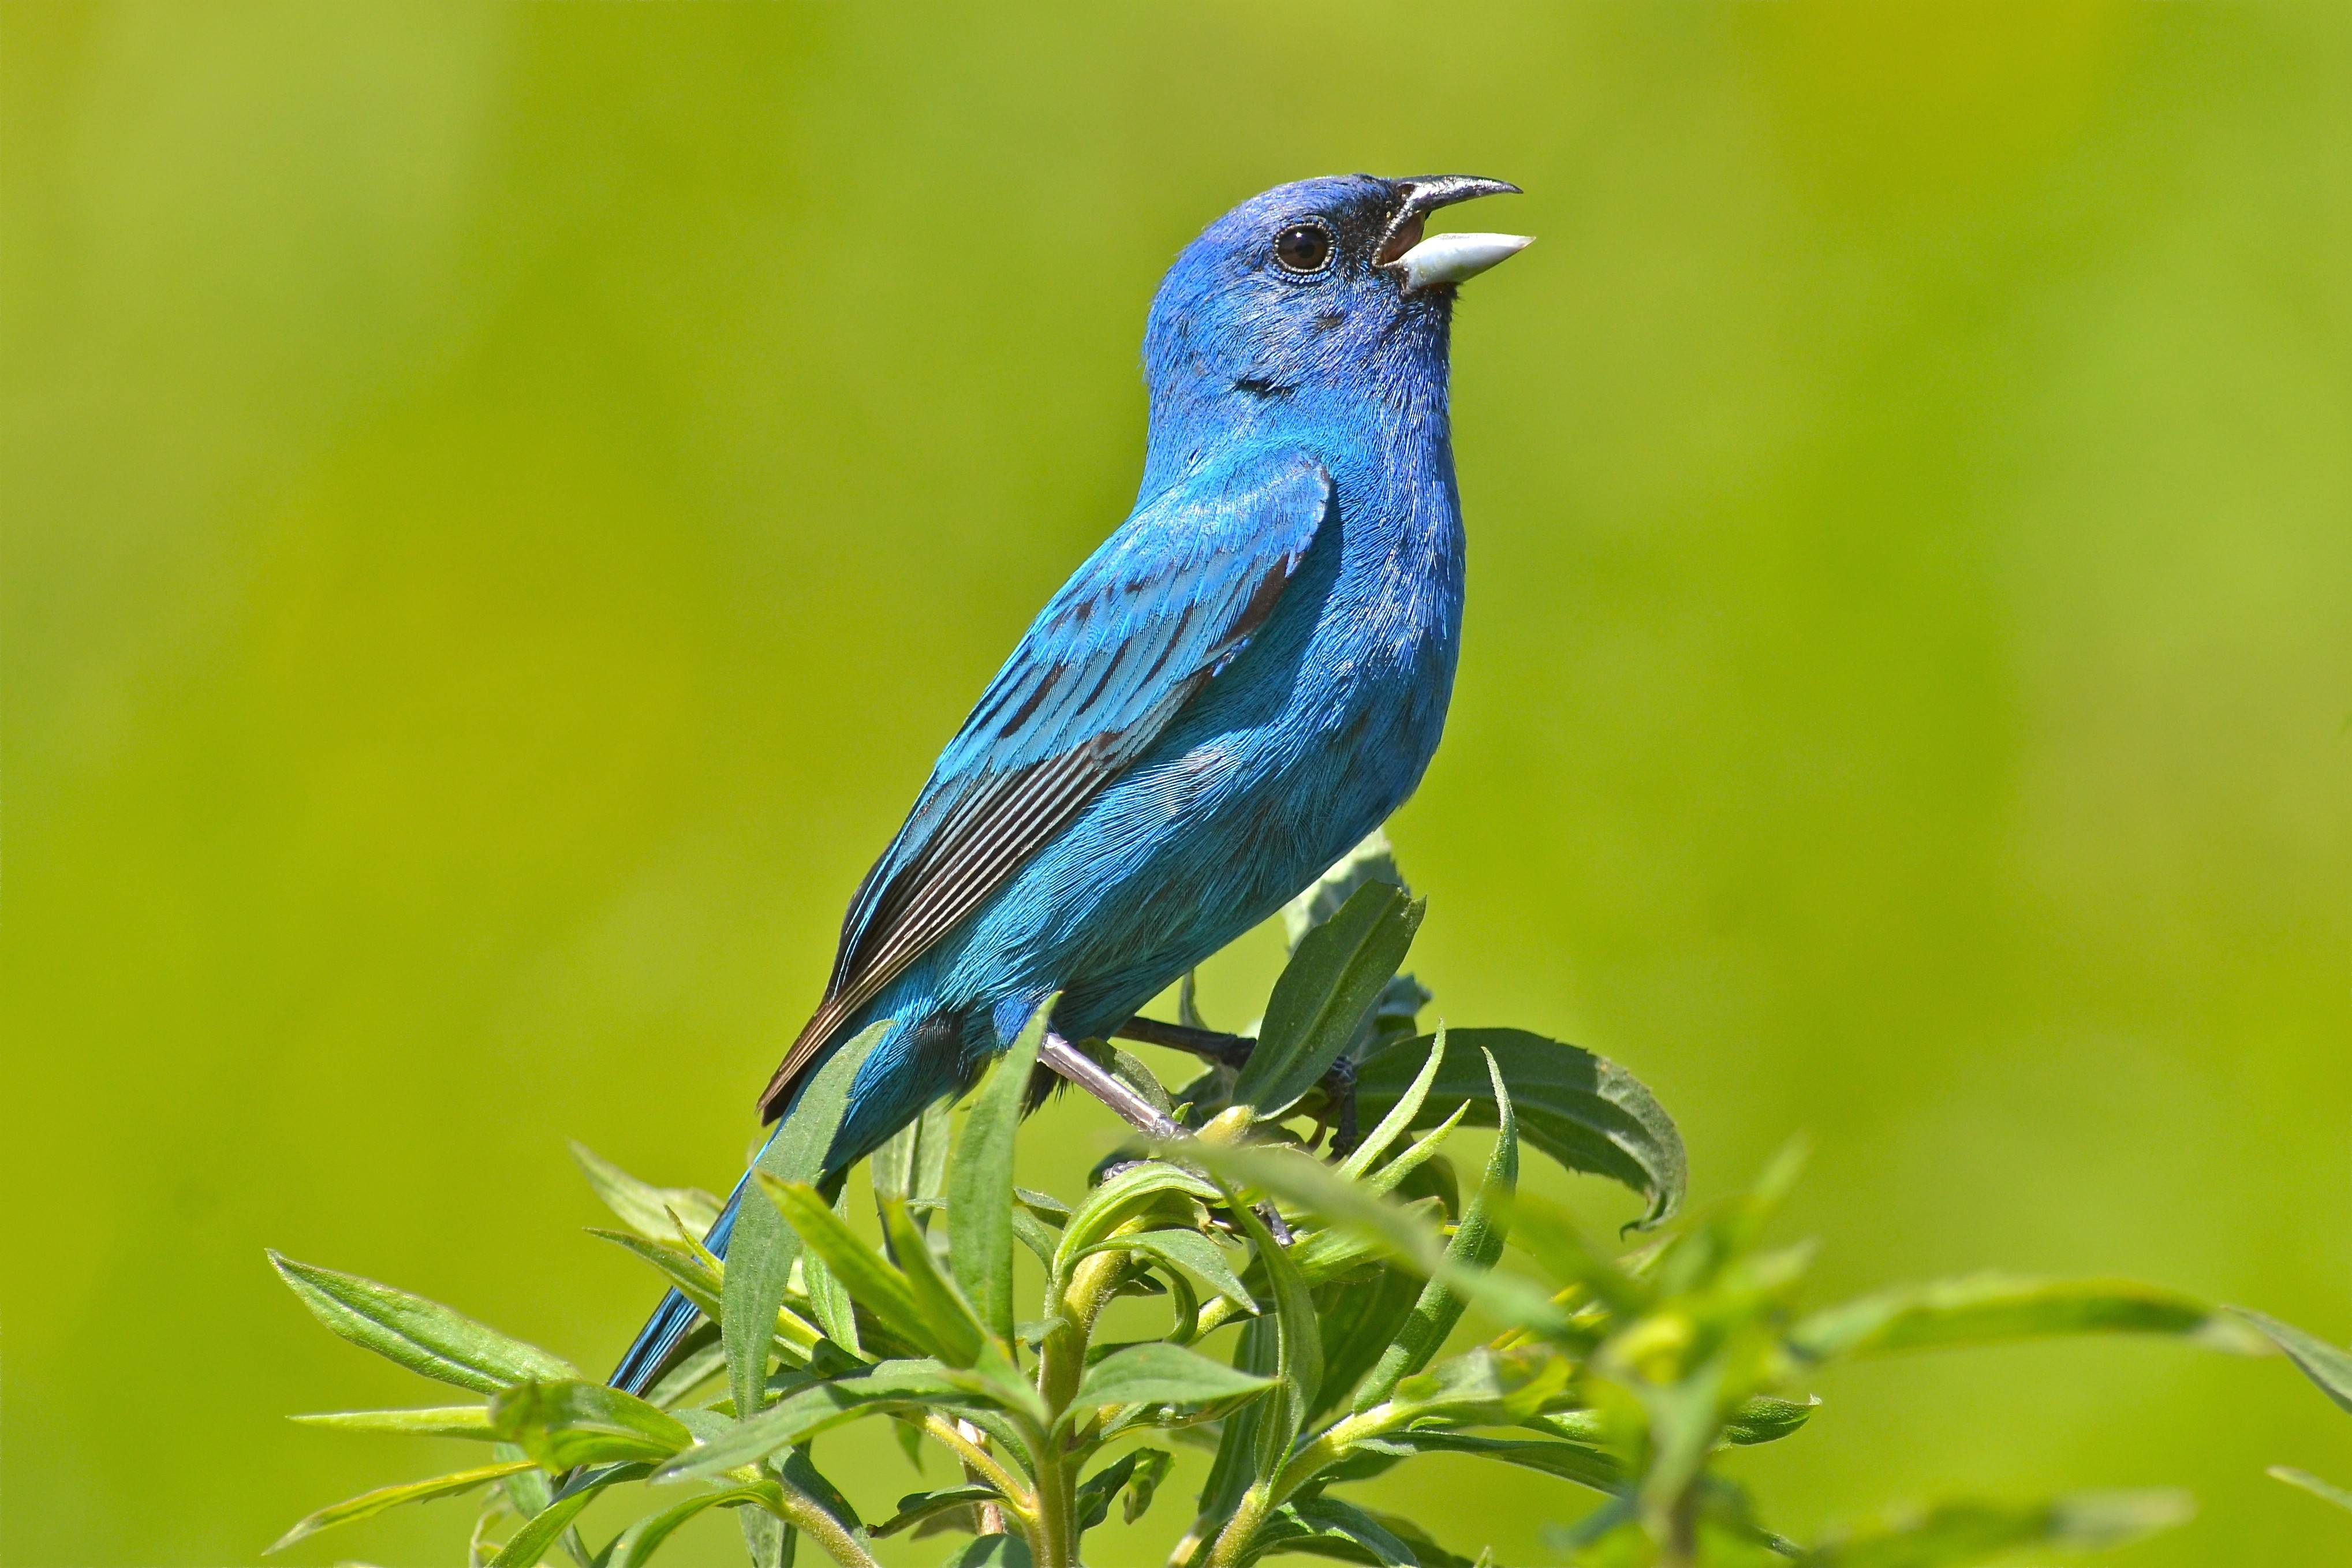 It may be common, but it's hard to ignore a male indigo bunting. Watching the common birds carefully, even in our backyards, will sometimes reveal fascinating and surprising behaviors.